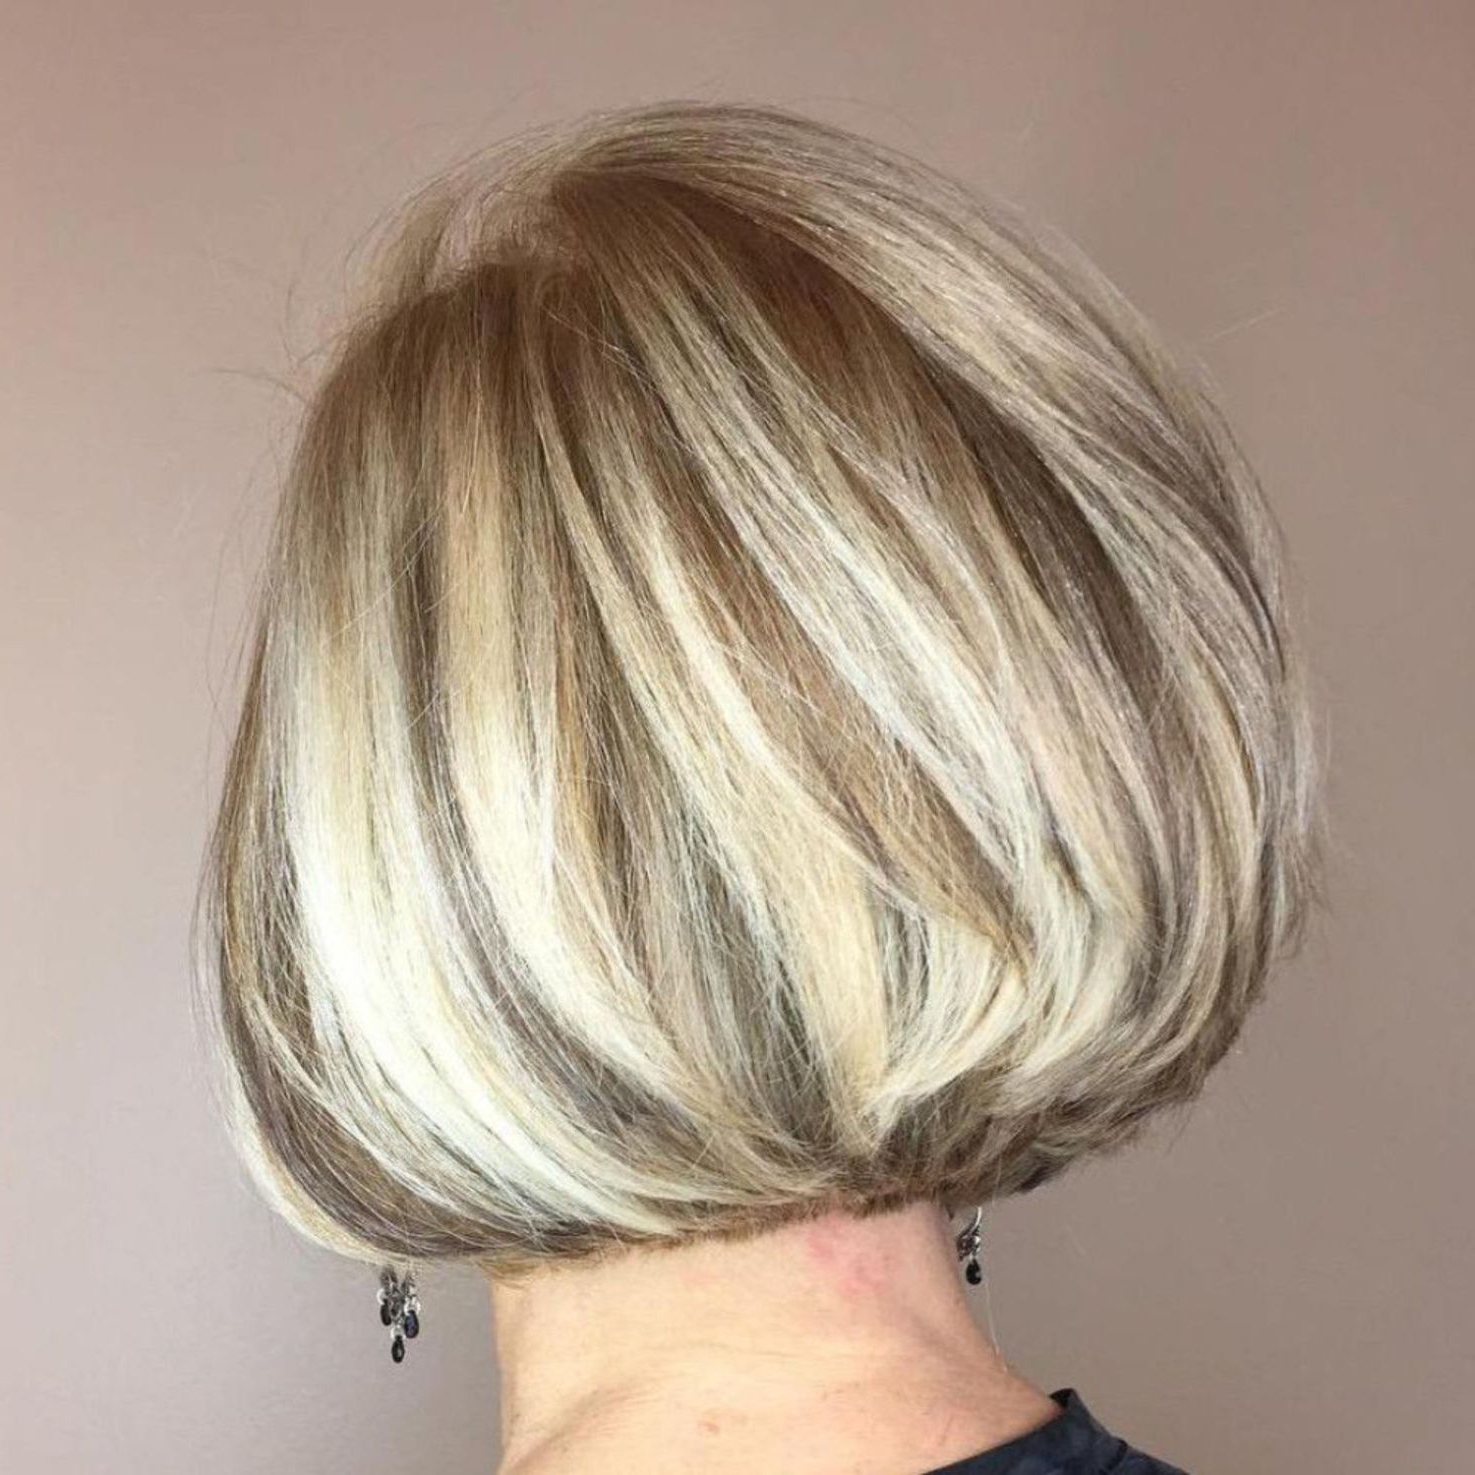 80 Best Modern Hairstyles And Haircuts For Women Over 50 Within Modern And Stylish Blonde Bob Haircuts (View 16 of 20)